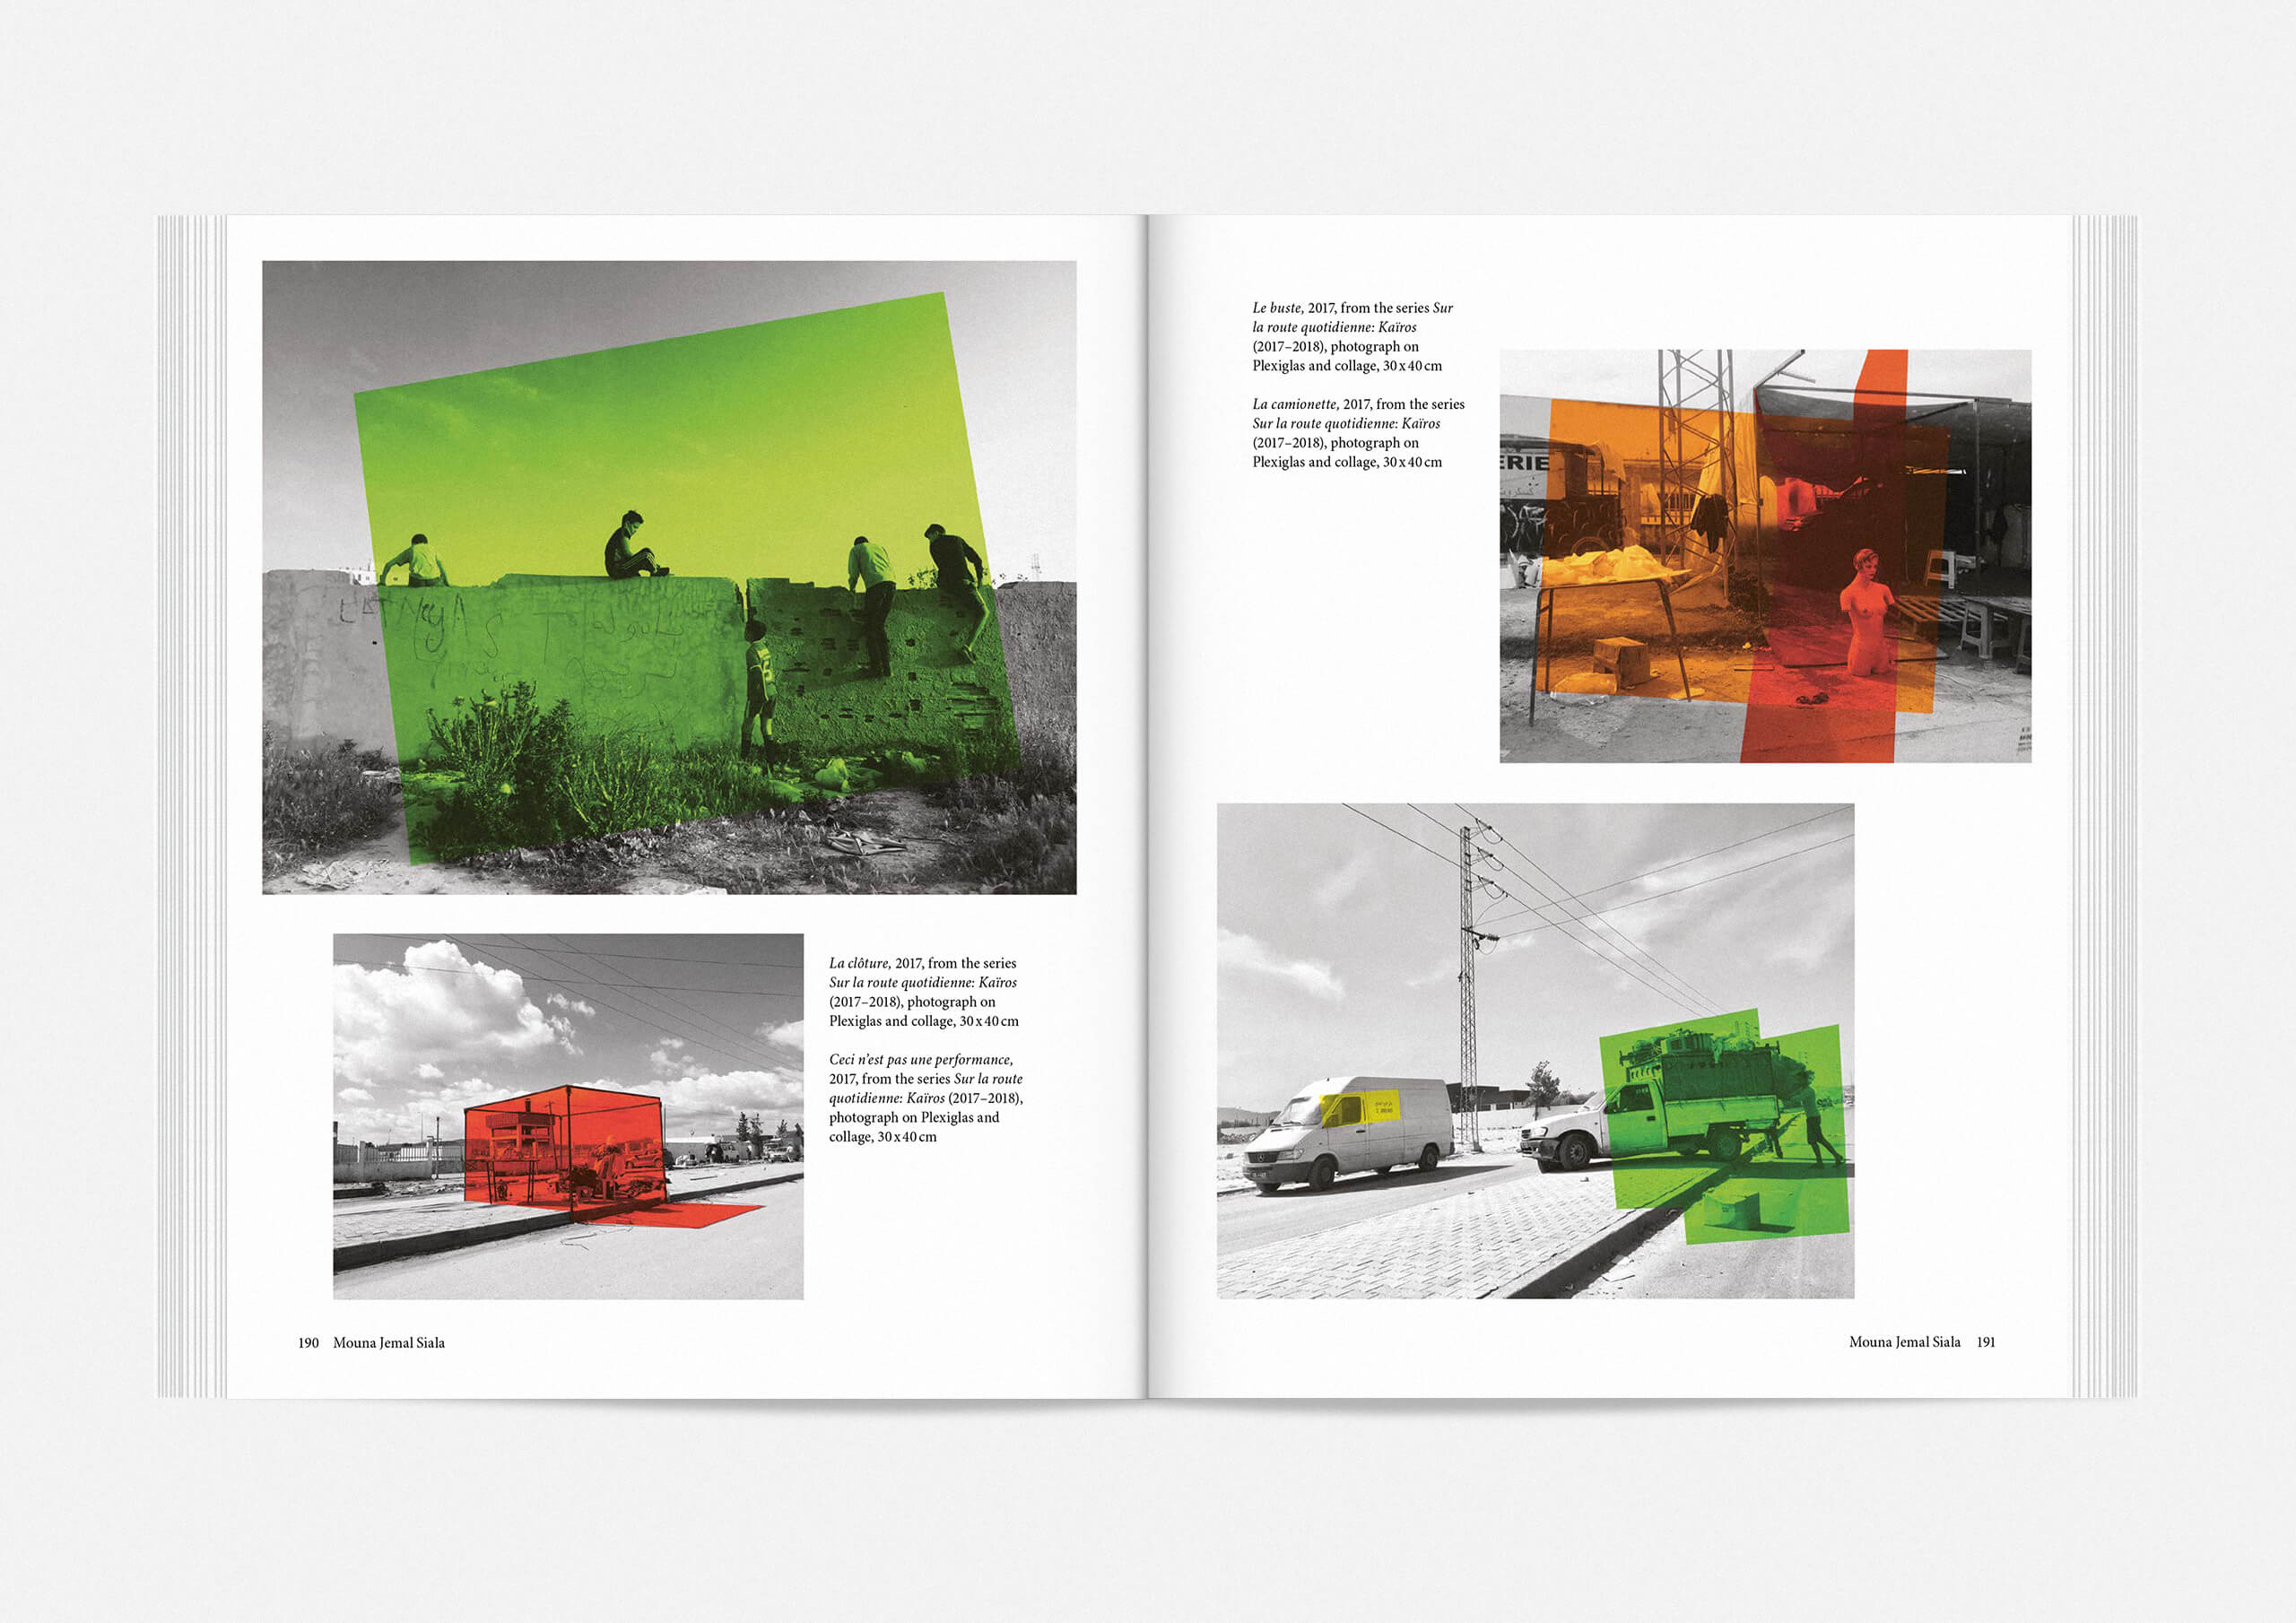 http://www.neuegestaltung.de/media/pages/clients/protocollum-issue-no-05/1168215b69-1597415142/protocollum-5-page-190191-ng.jpg